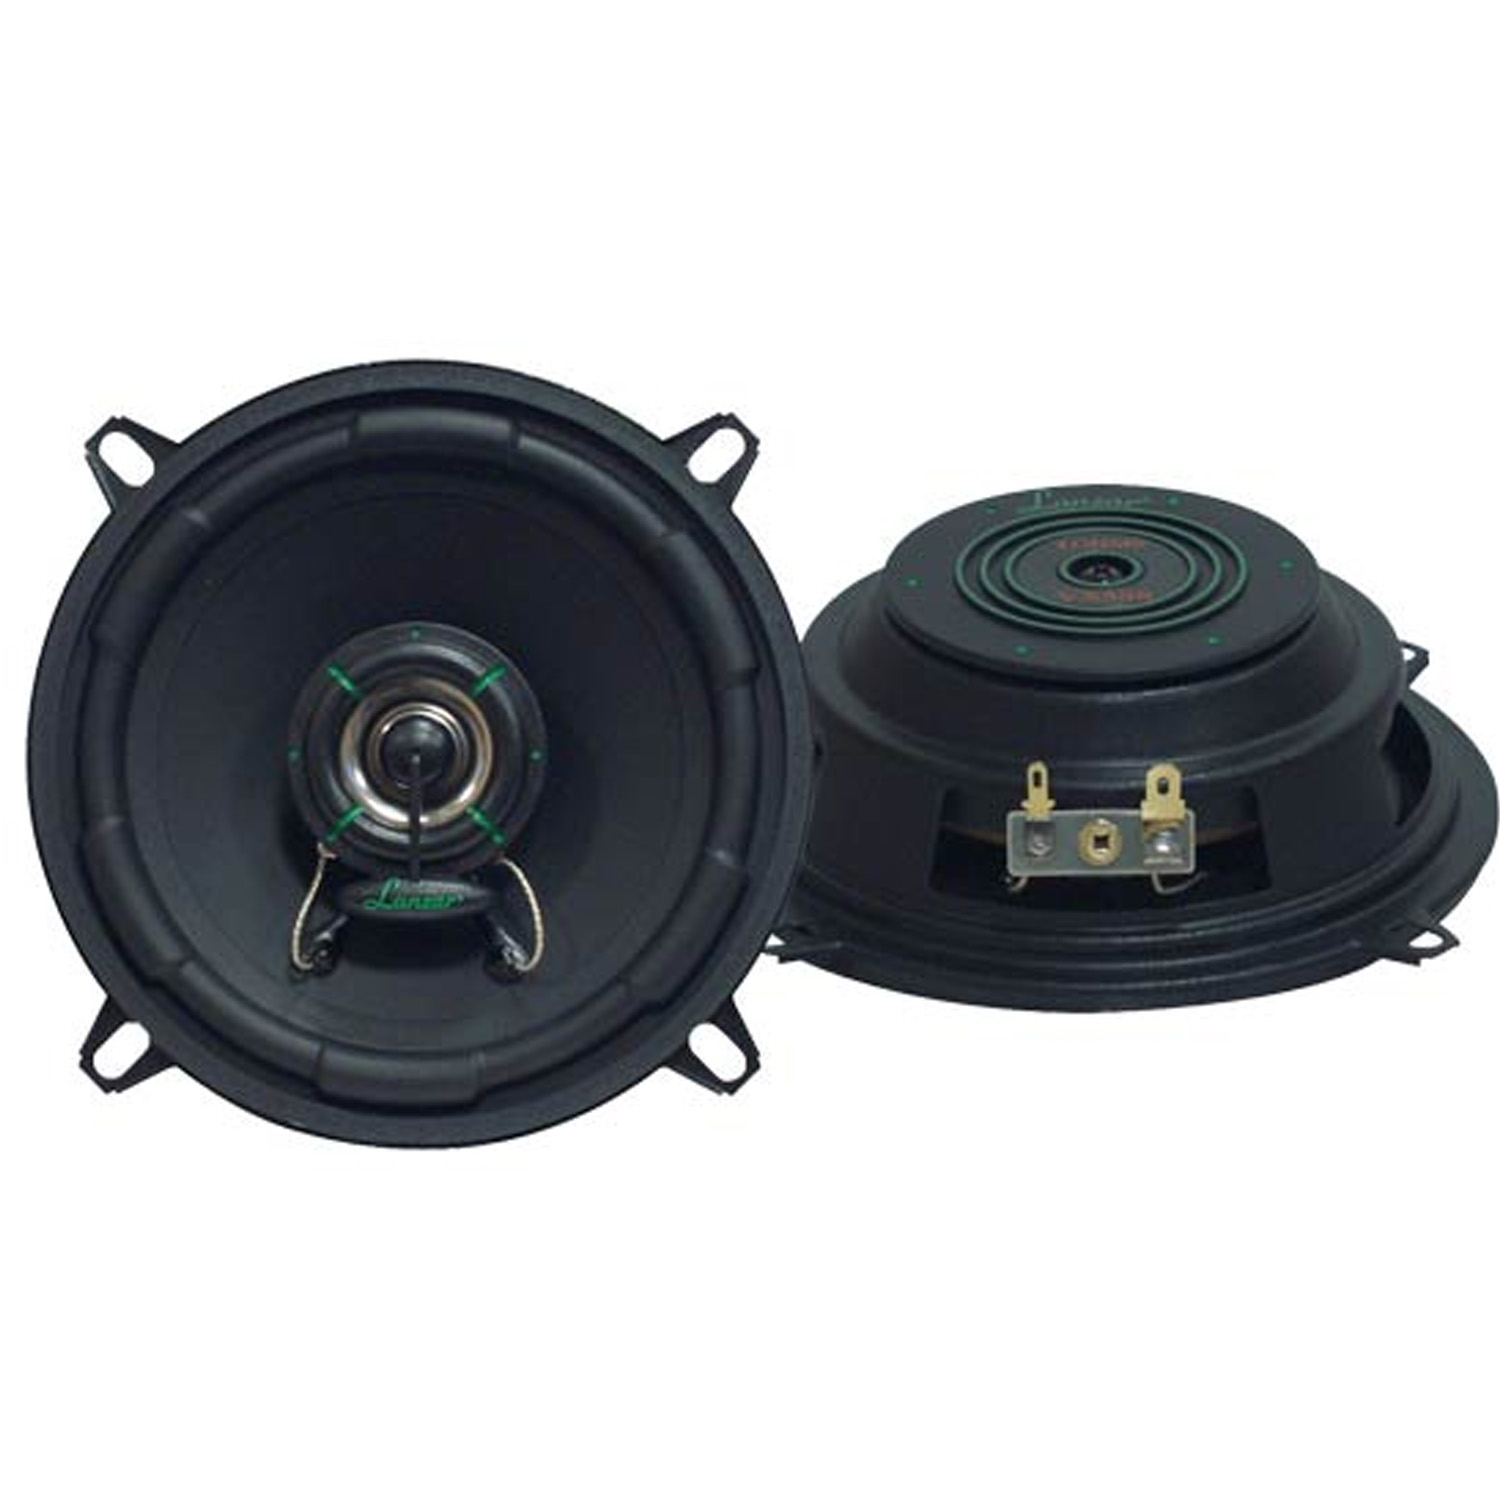 "Lanzar VX 5.25"" Two-Way Slim Mount Speaker System"